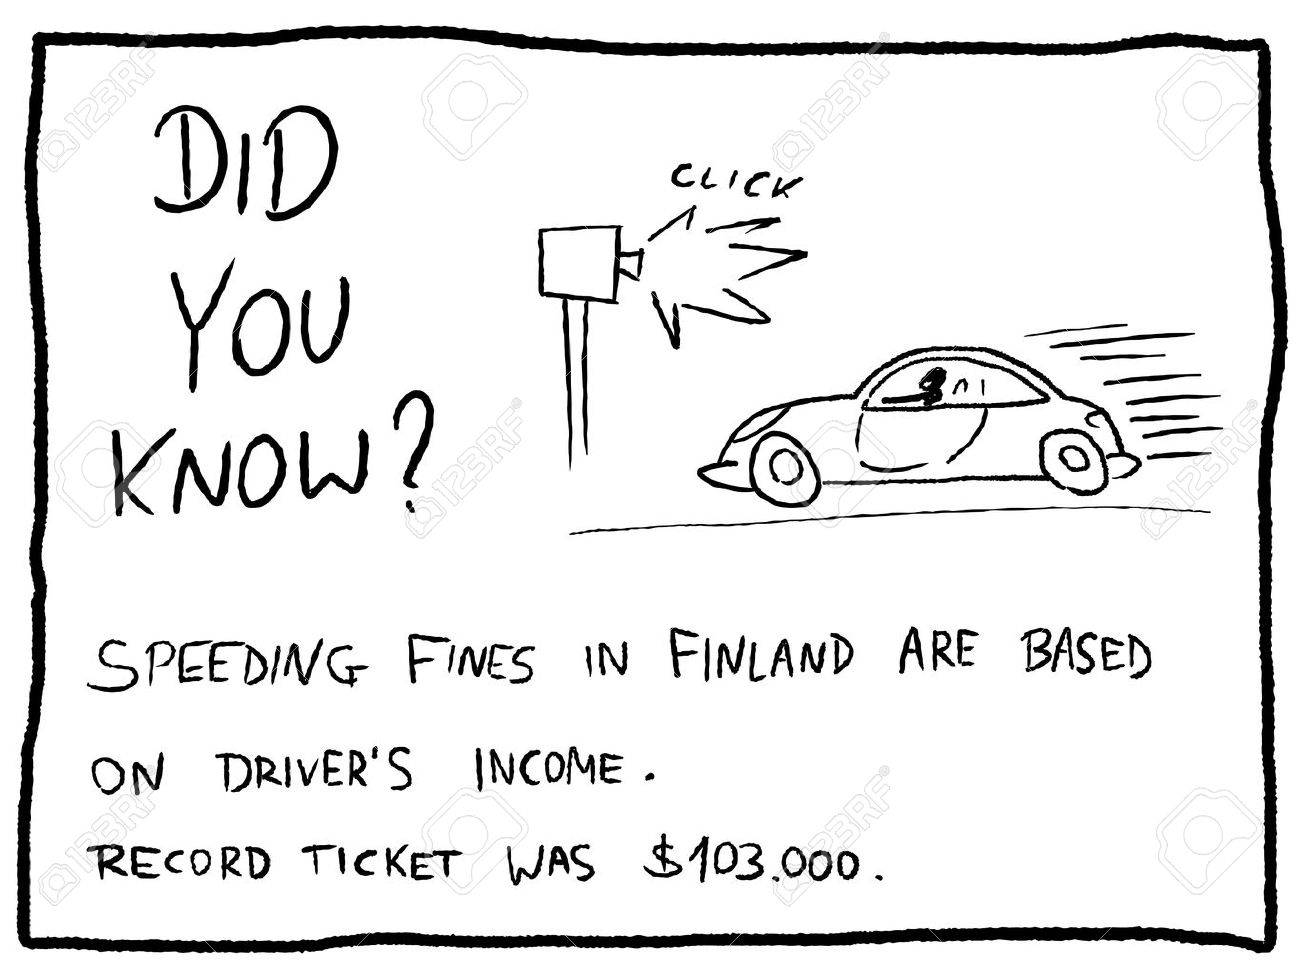 Fun fact trivia - useful doodle cartoon illustration usable as a webcomic or for funny section of a newspaper. - 44185377